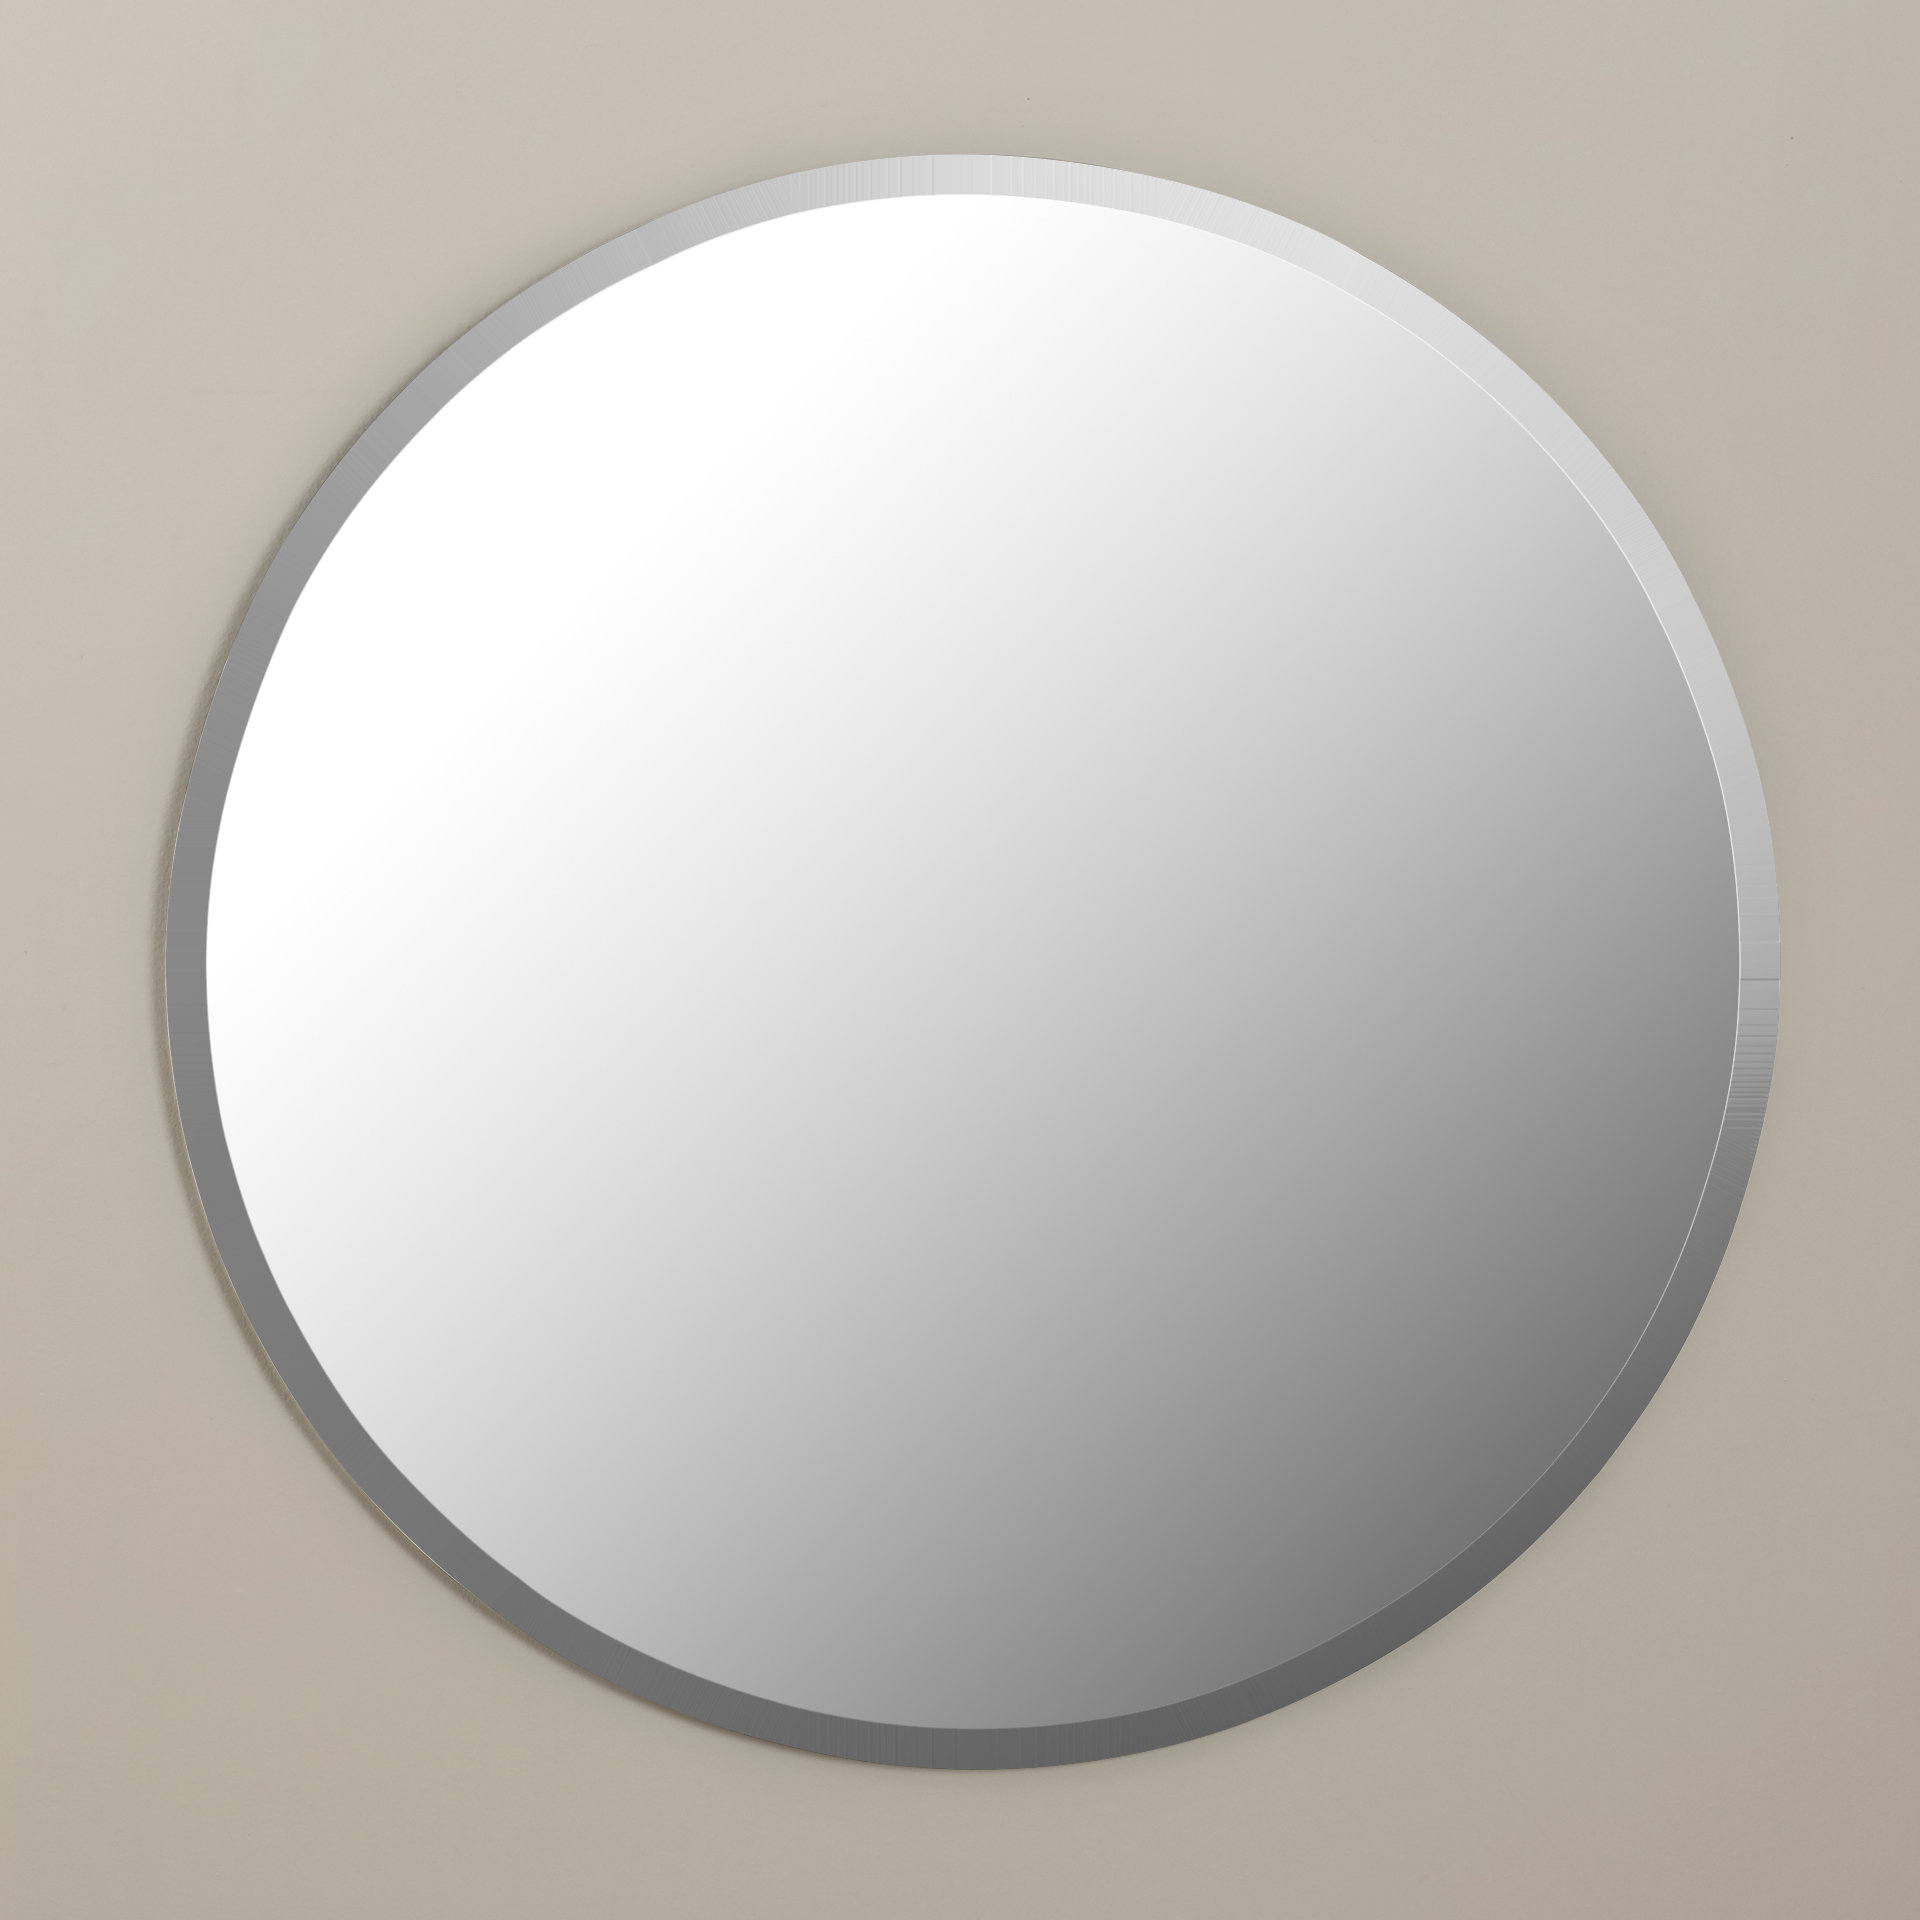 Kayden Accent Mirrors Intended For Favorite Kayden Accent Mirror (View 2 of 20)